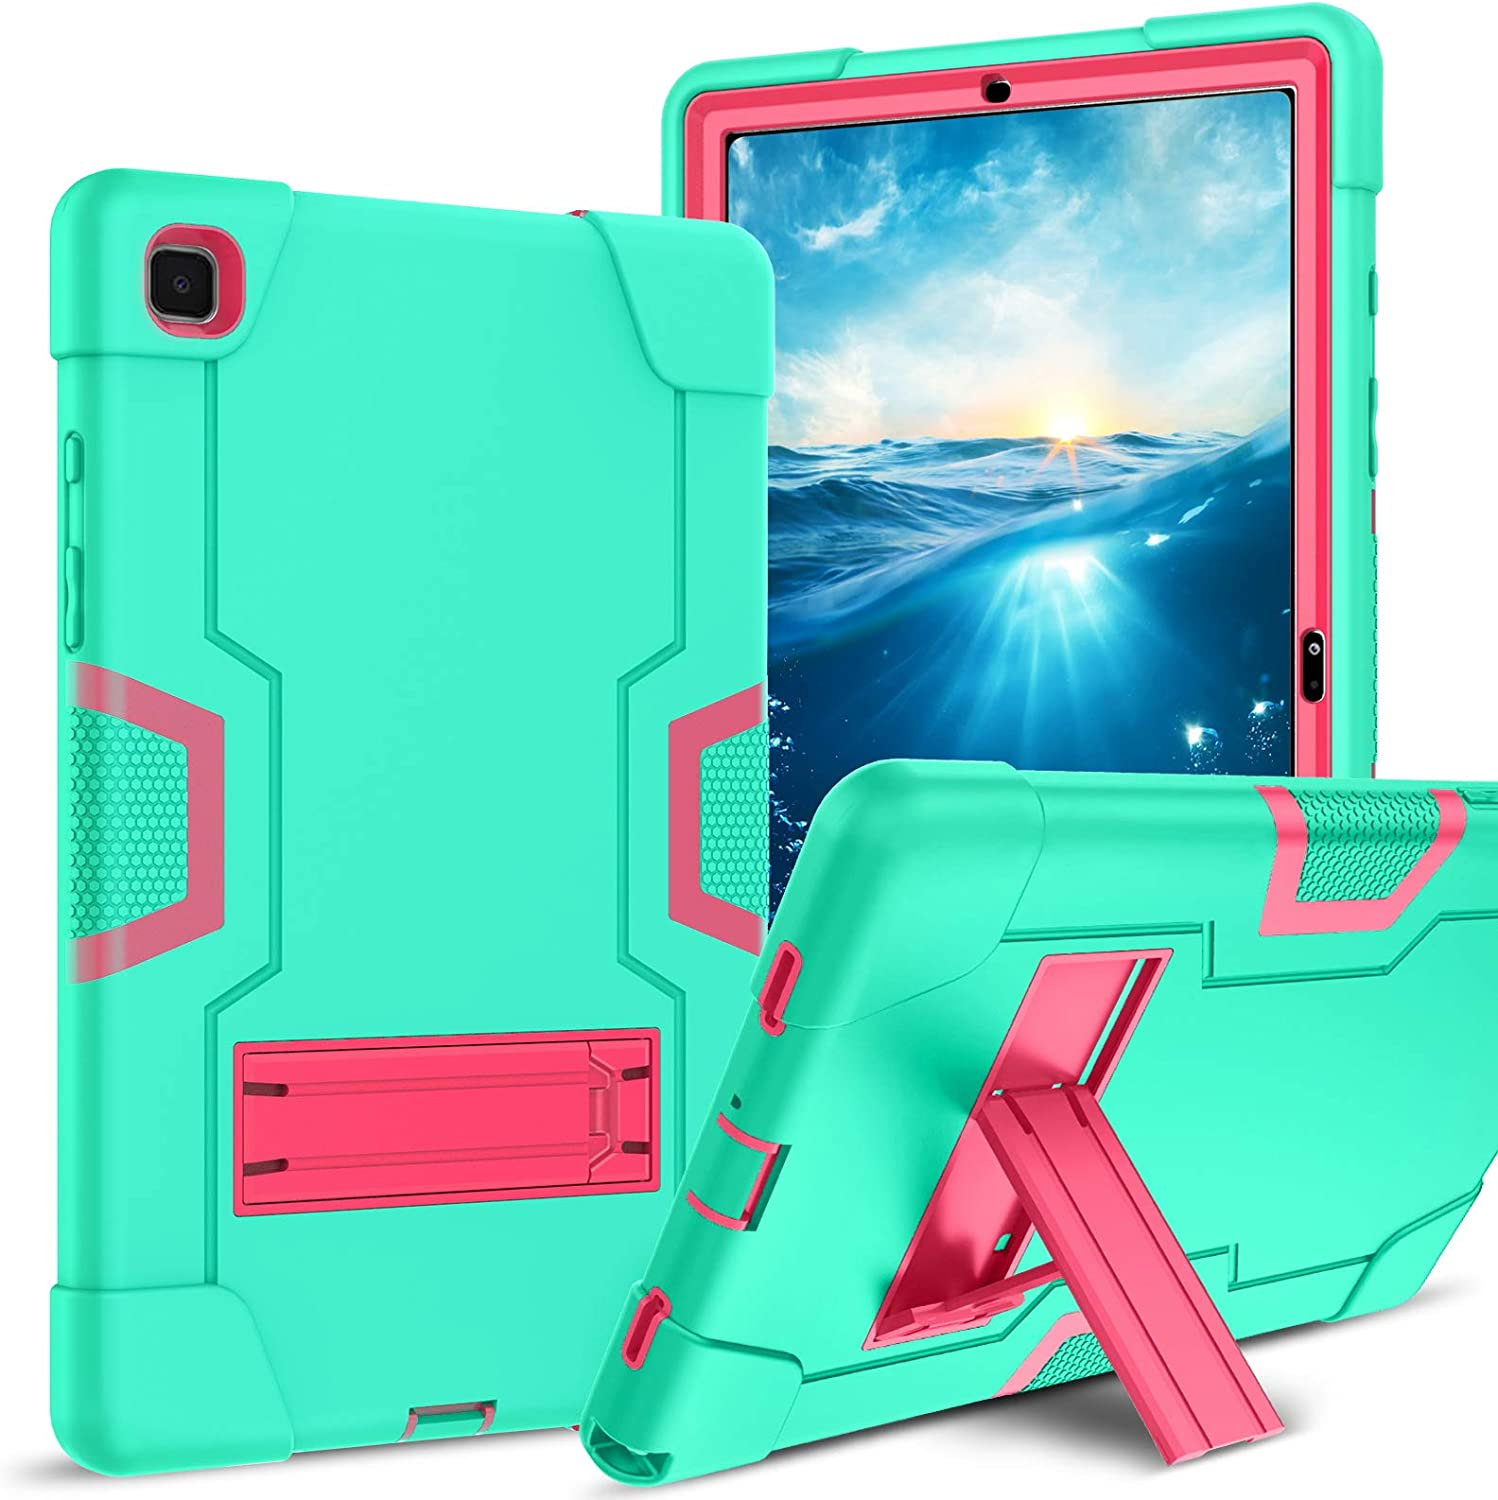 GUAGUA Attention brand Case Jacksonville Mall for Samsung Galaxy Tab 10.4 2020 T50 SM-T500 A7 T505